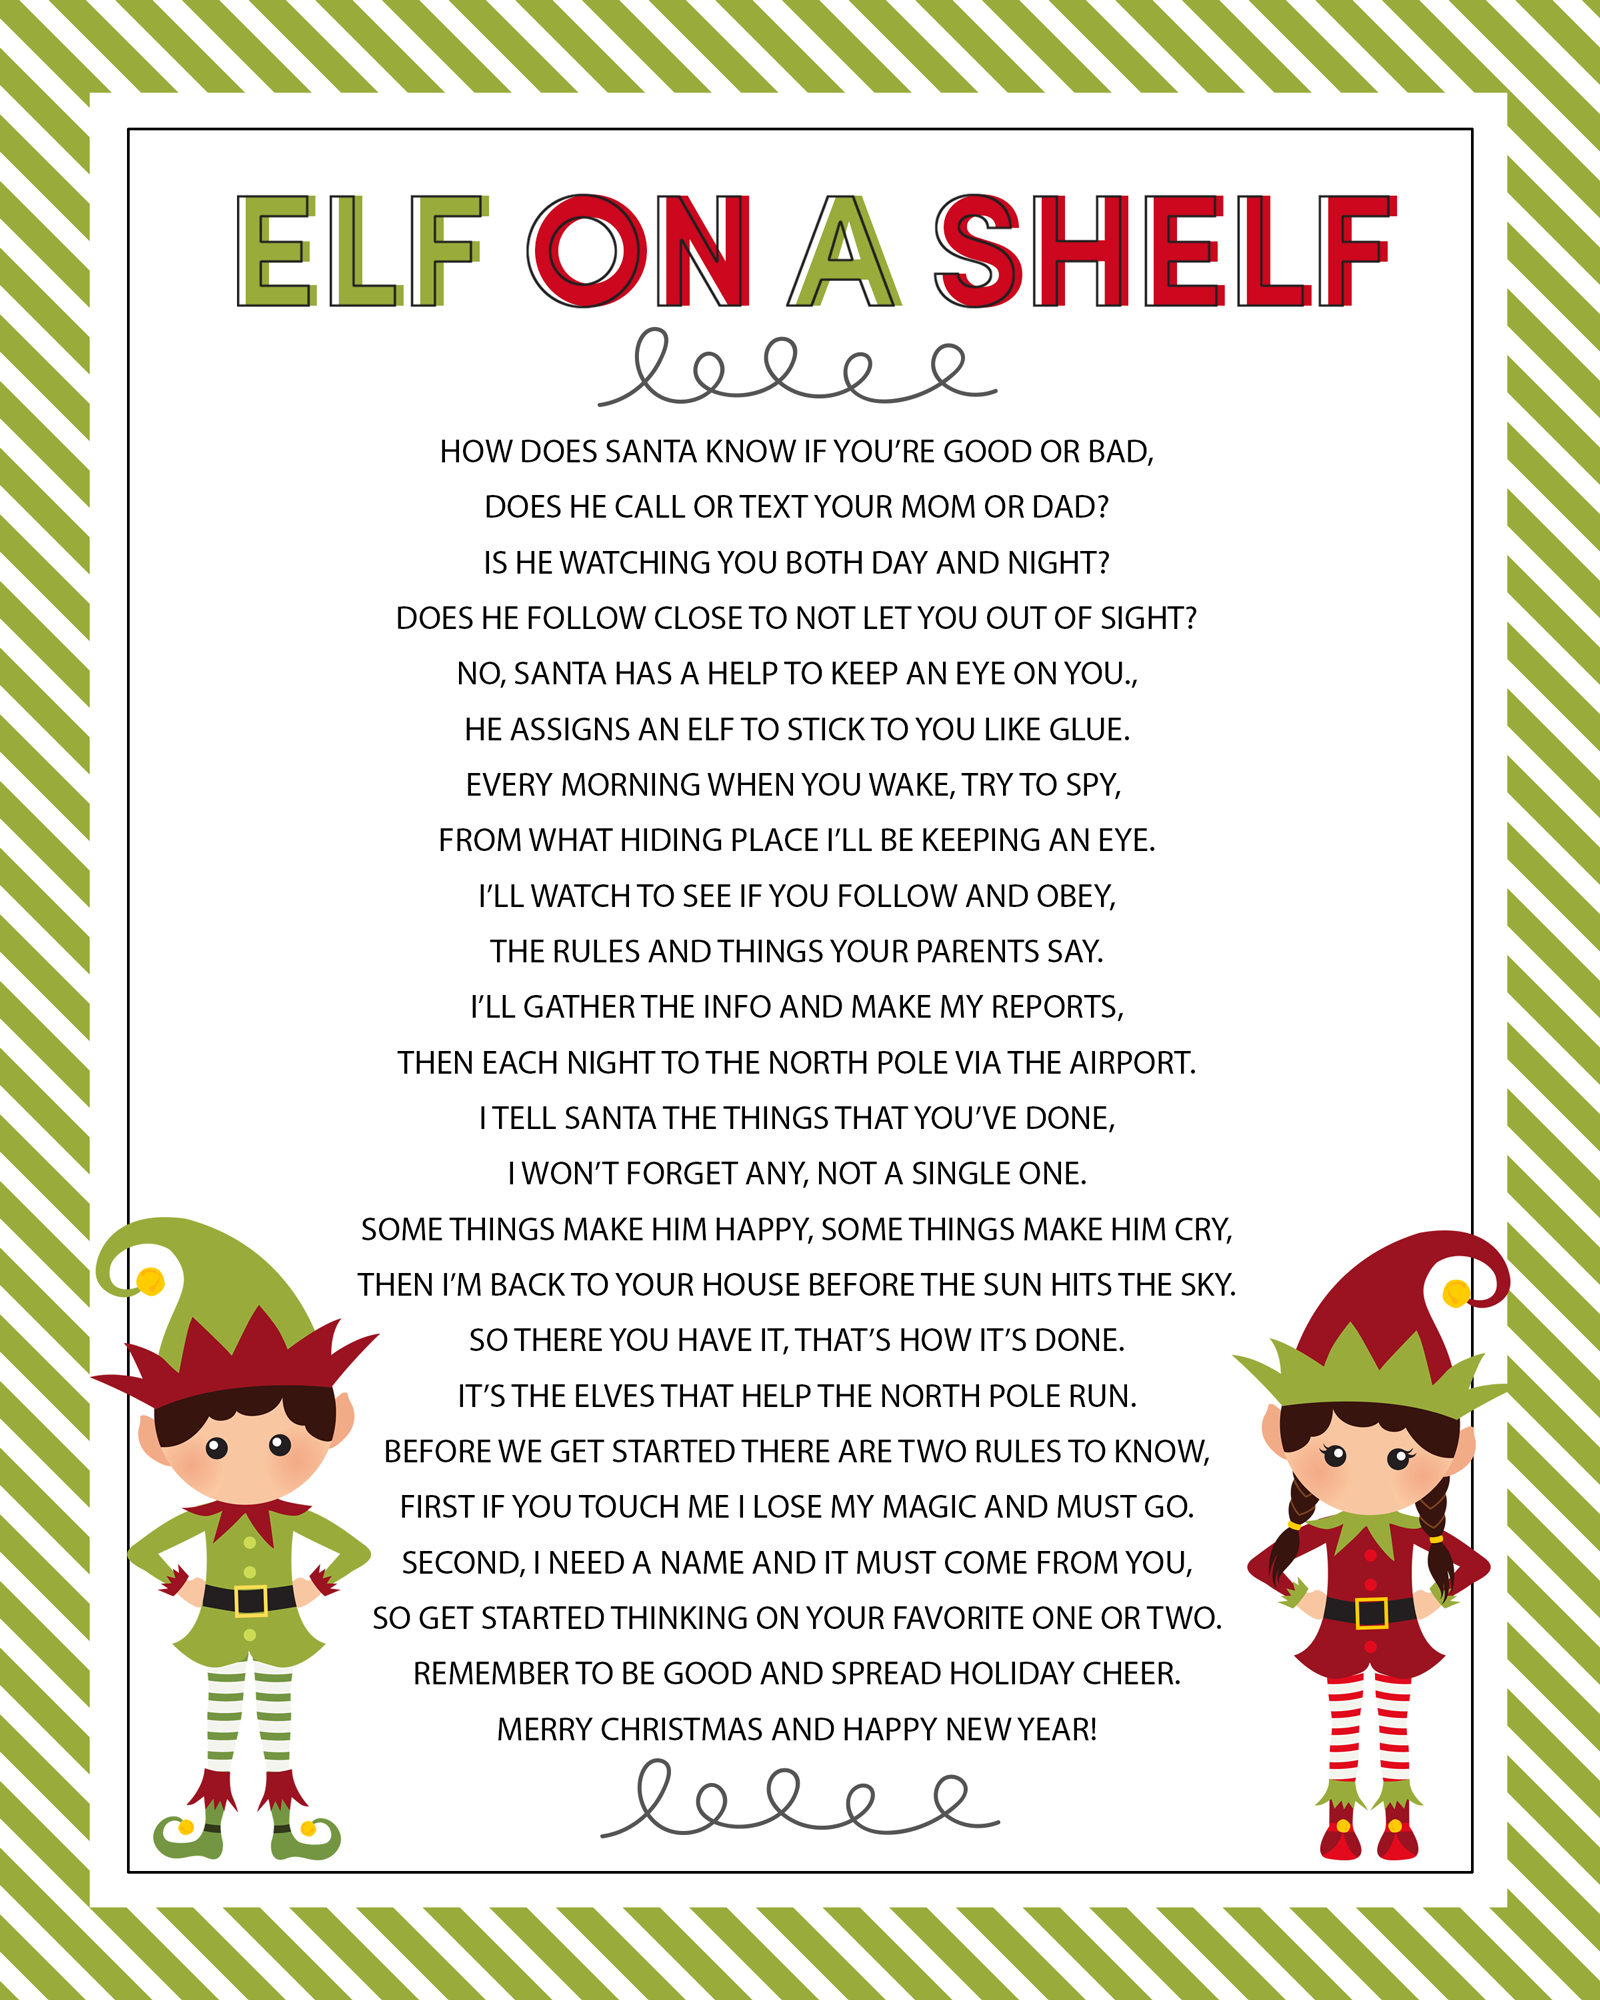 Elf On The Shelf Story